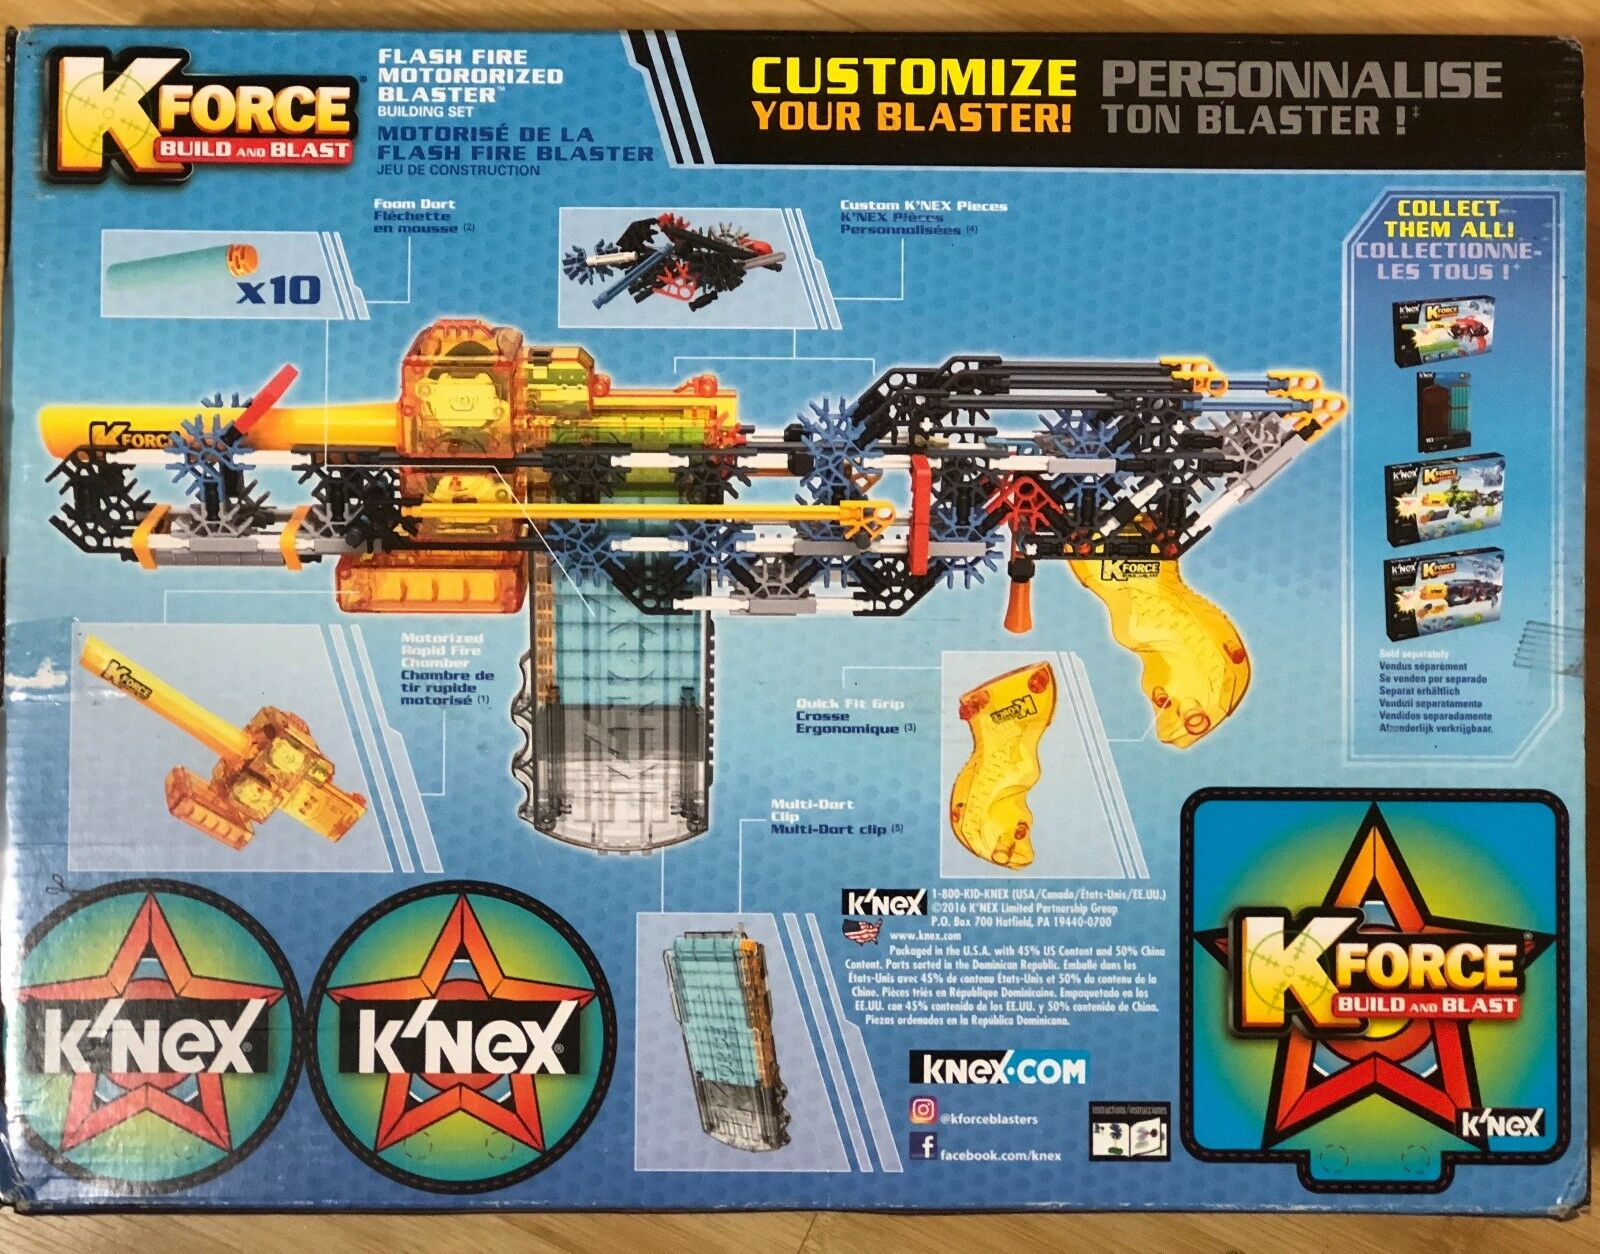 K'NEX K-Force  Flash Fire Motorized Blaster Building Set  288 Pieces  For Age 8+